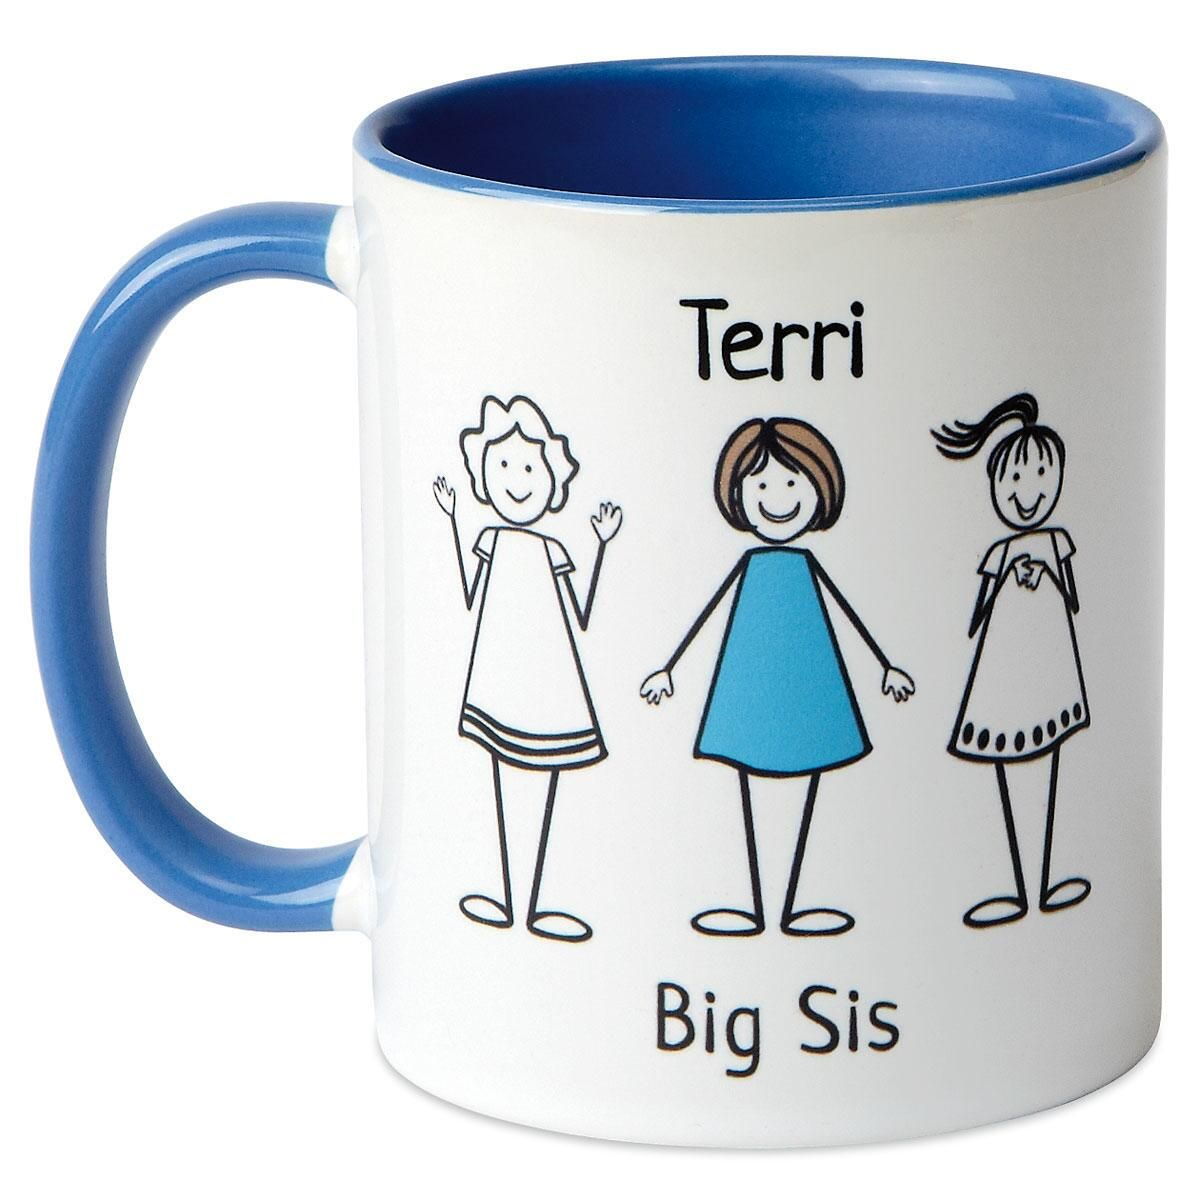 Big/Middle/Li'l Sis Mug